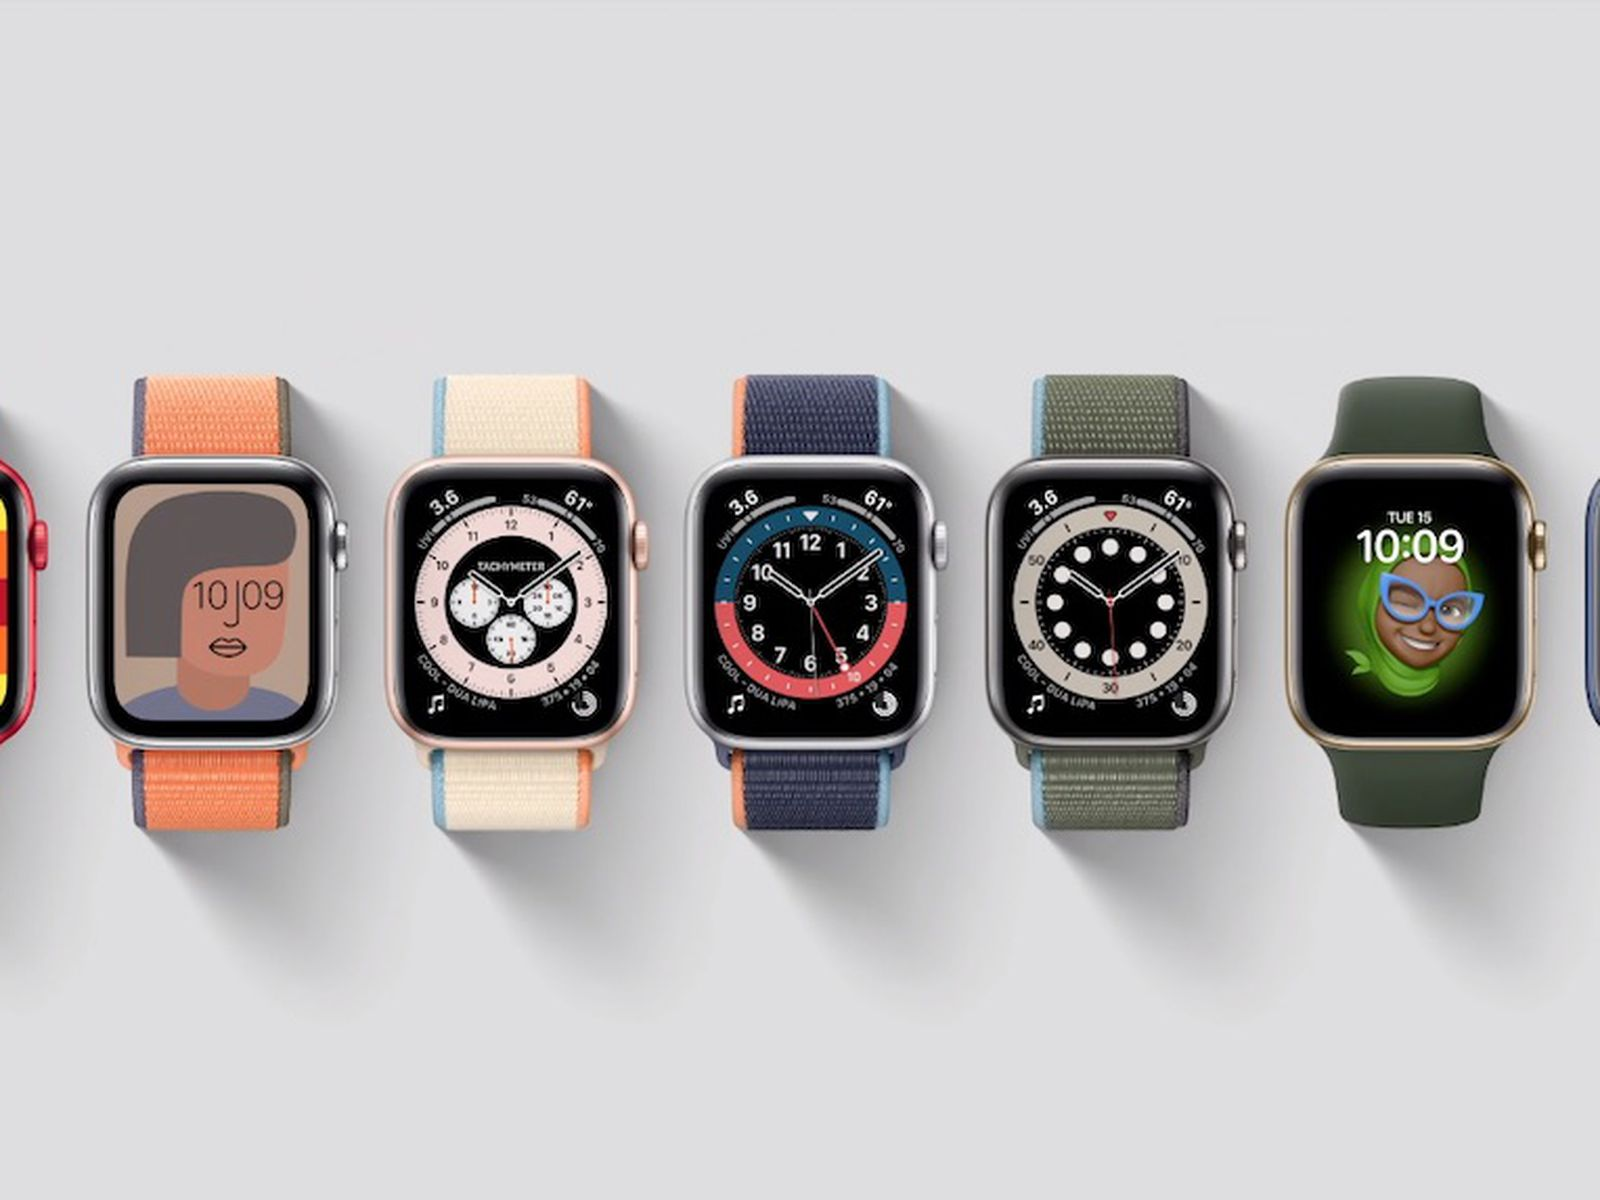 Apple Watch Series 6 - Full smartwatch specifications